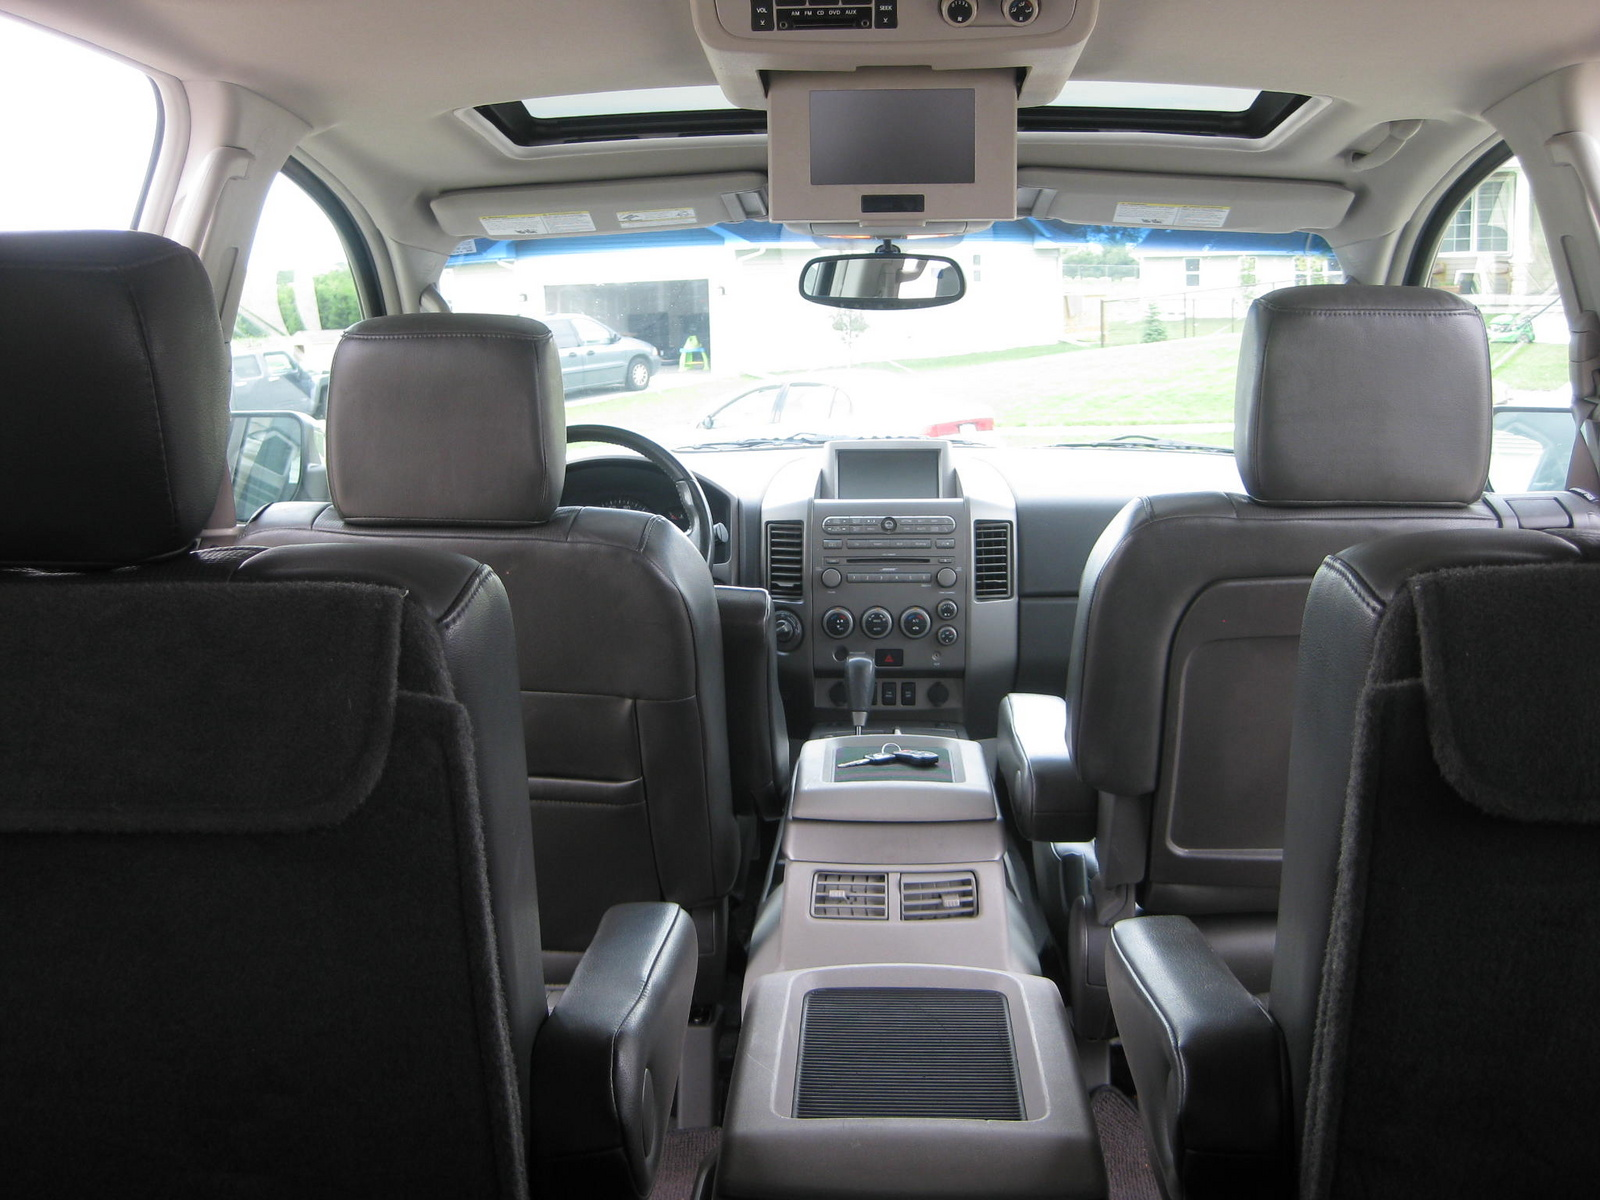 2007 nissan armada interior images hd cars wallpaper armada truck inside images reverse search filename 2004nissanarmadale4wd pic 5425312658254706320eg vanachro images vanachro Gallery